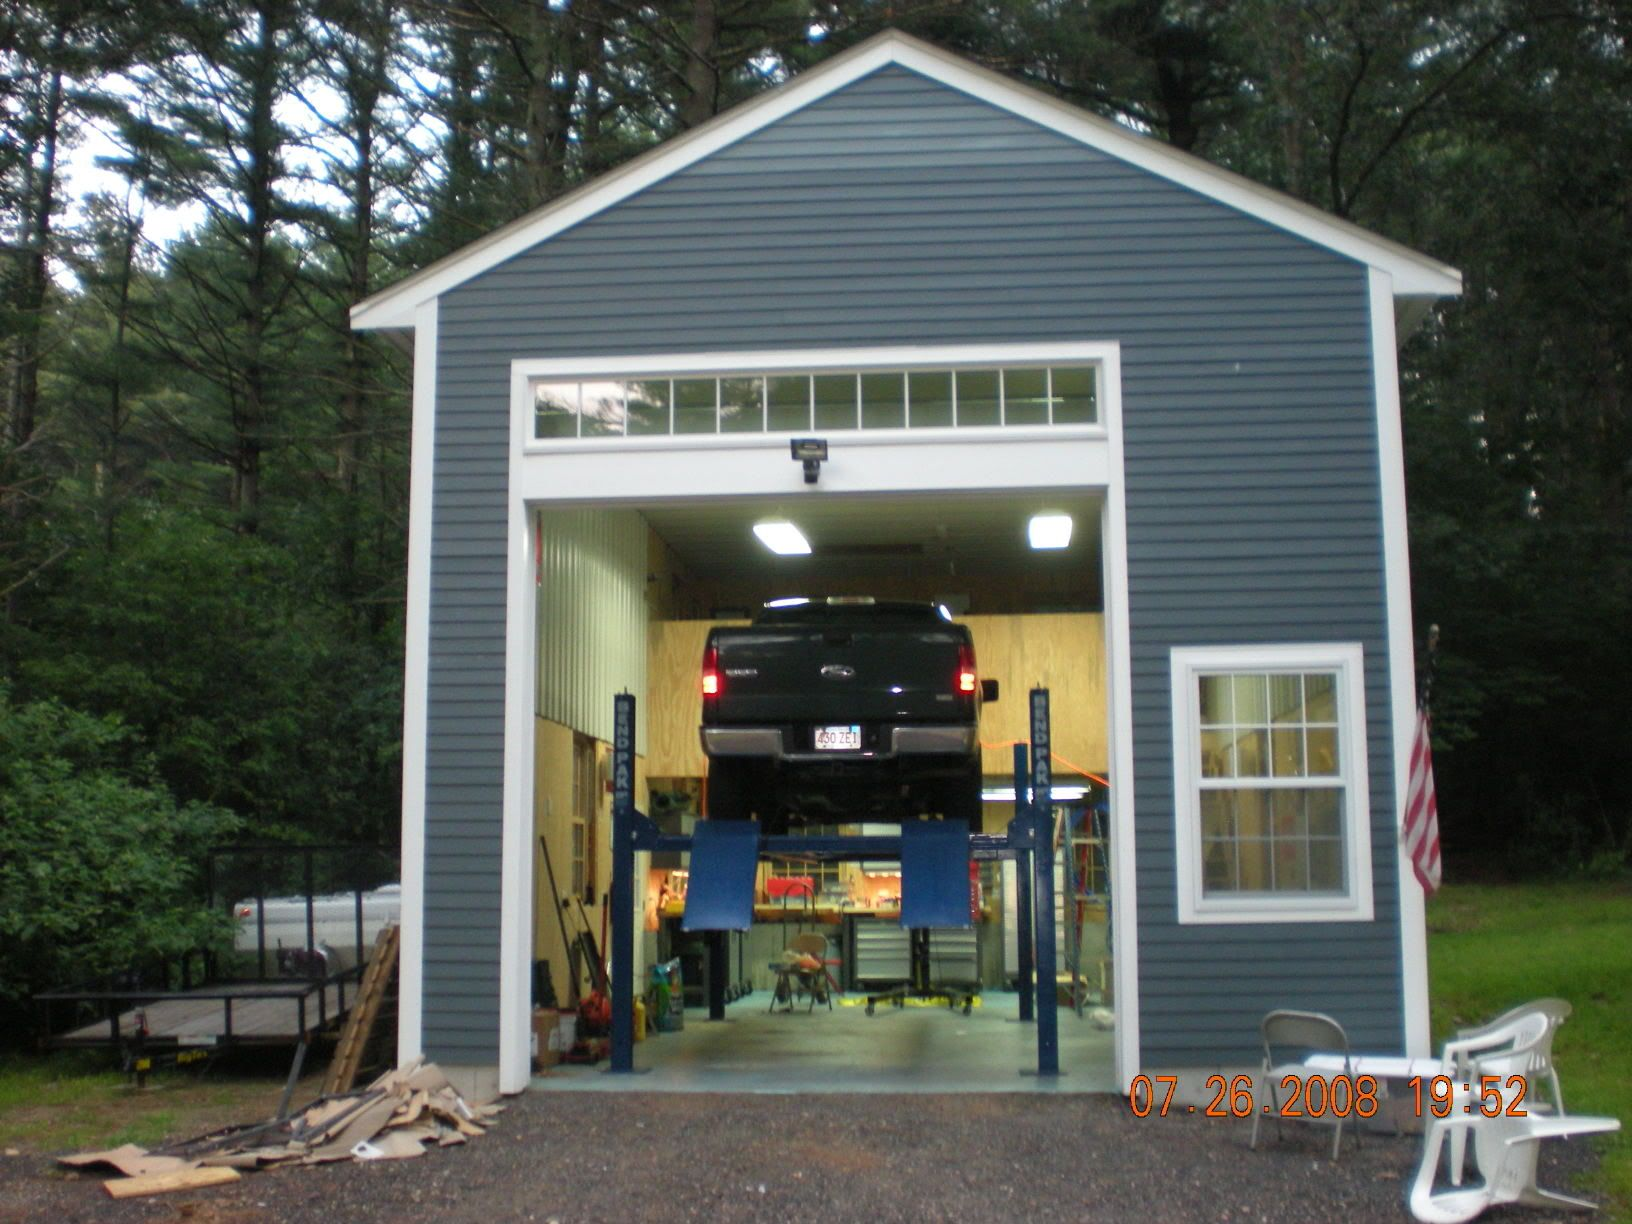 External Garage With 2 Car Lift Garage Stuff Pinterest